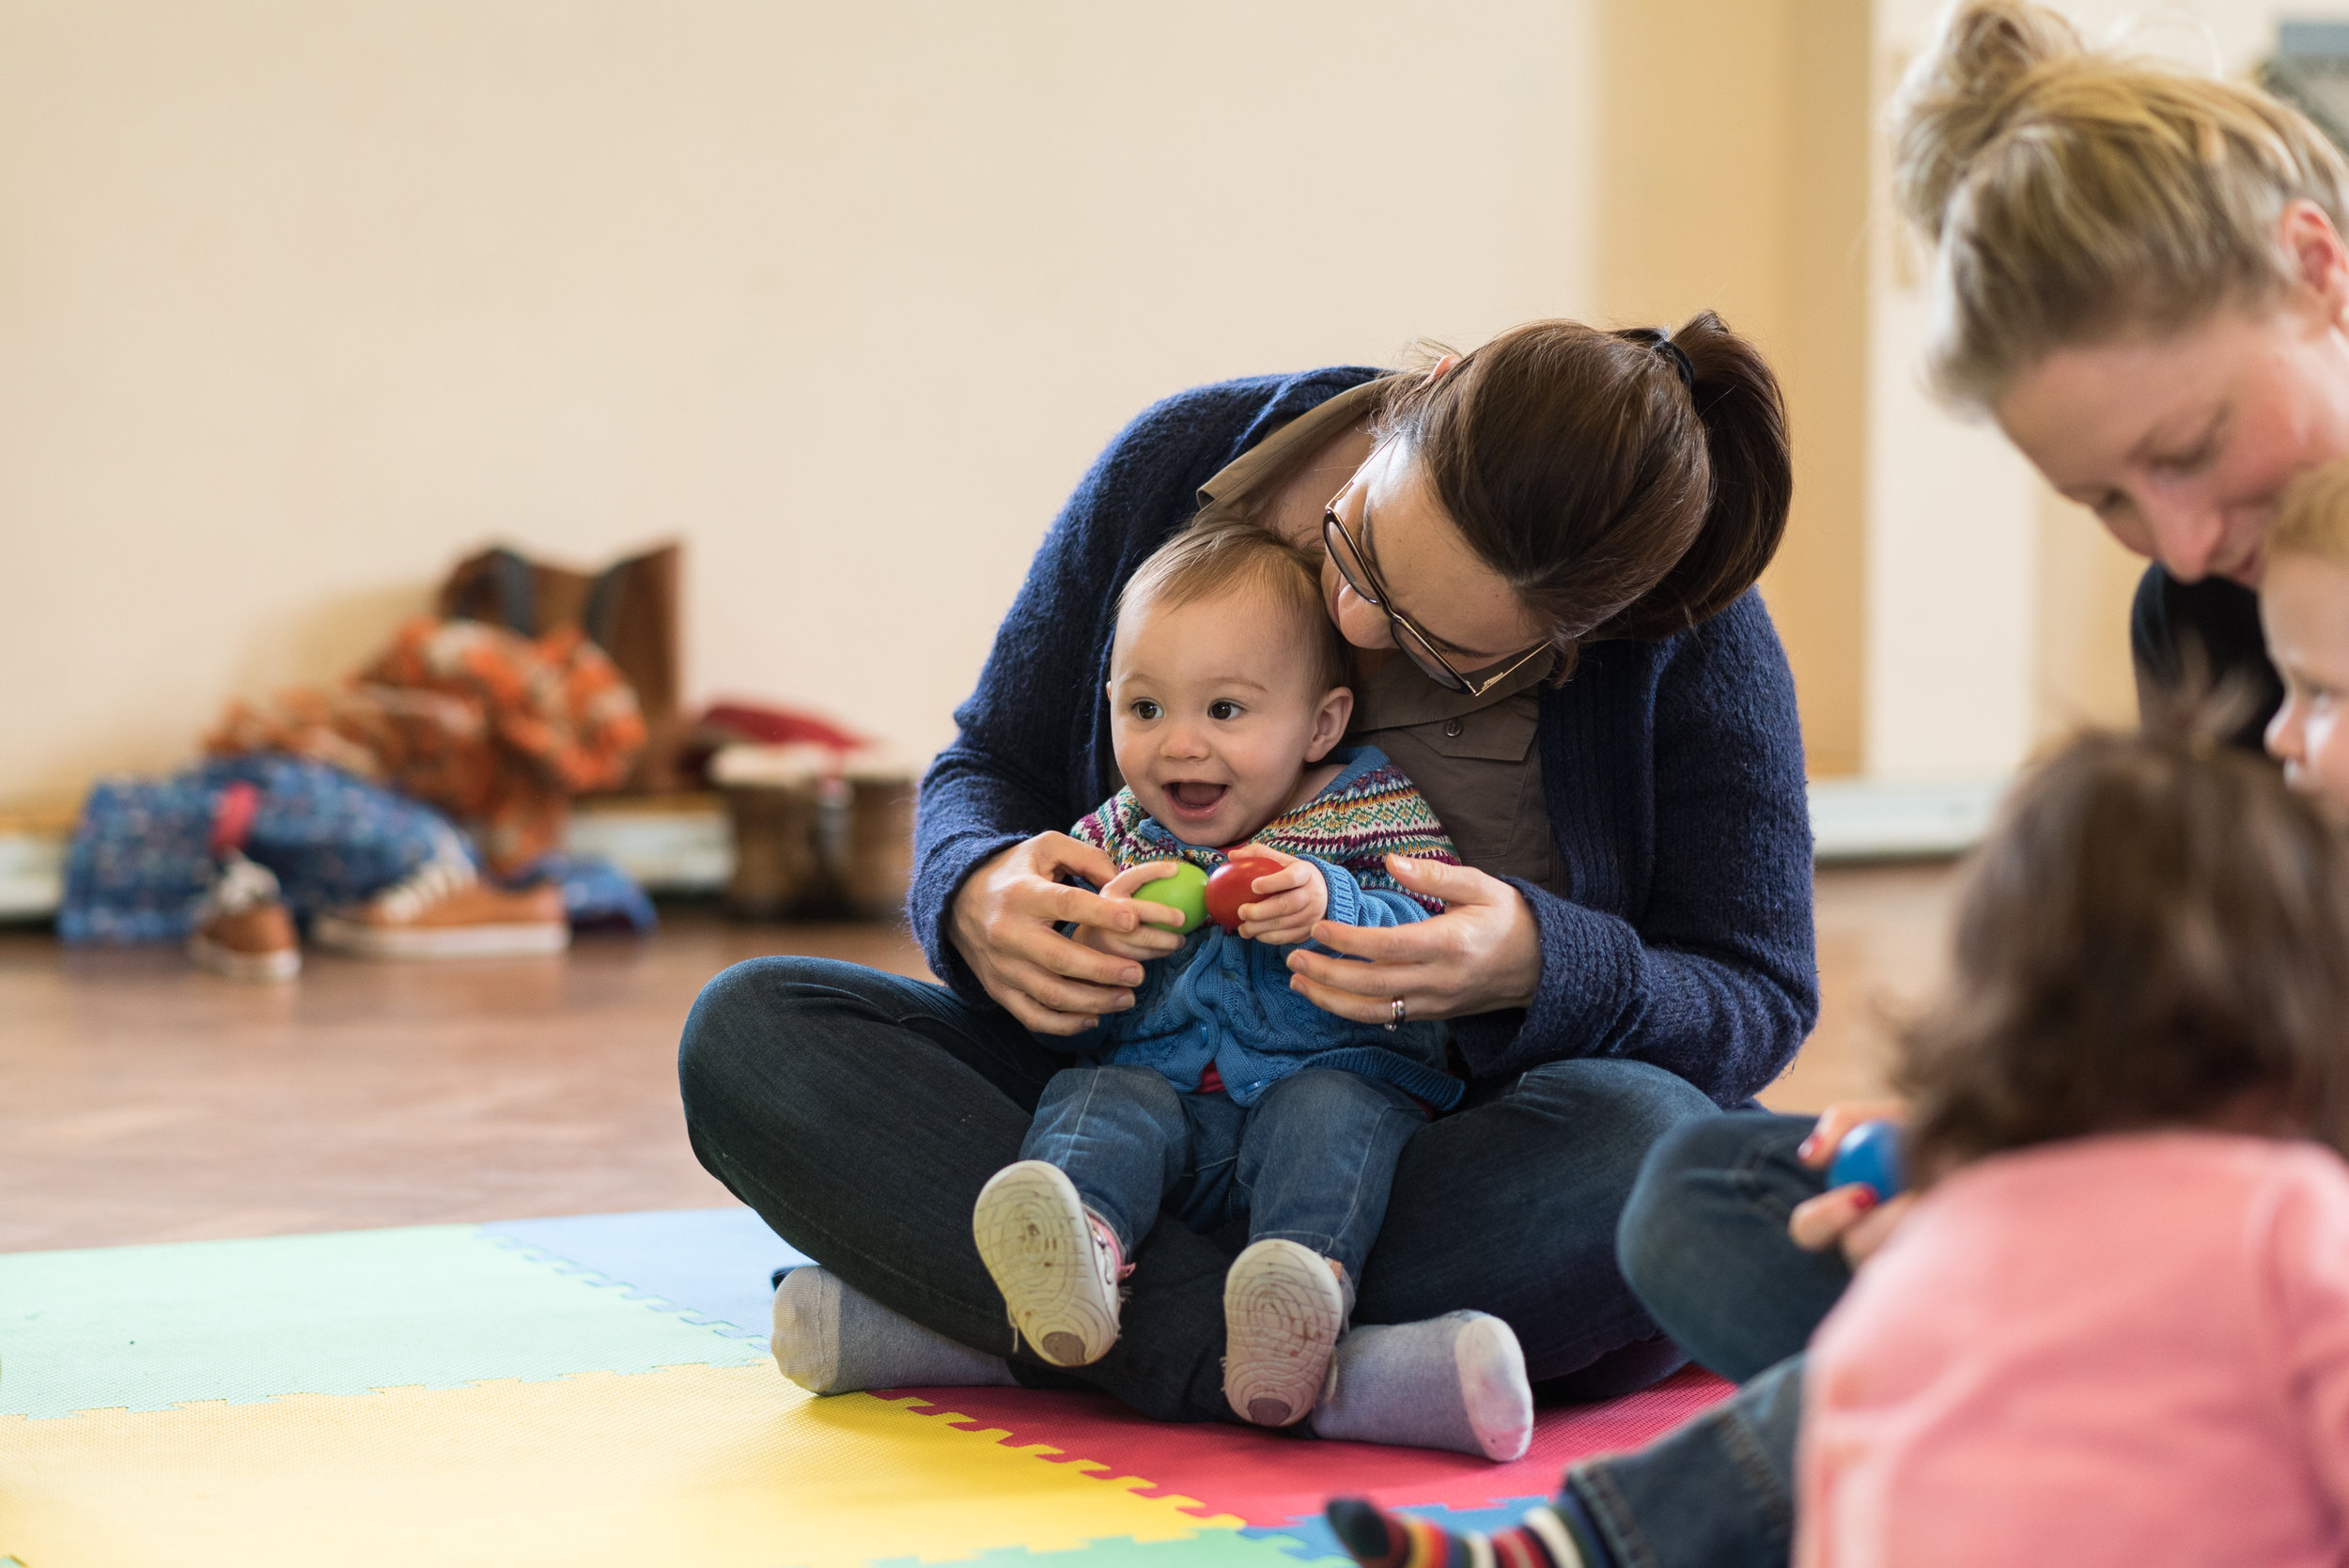 Our classes - Children love coming to make music at Greenwich Early Years Music!Each session is part of carefully designed curriculum which allows children to develop musical awareness, creativity and ability.